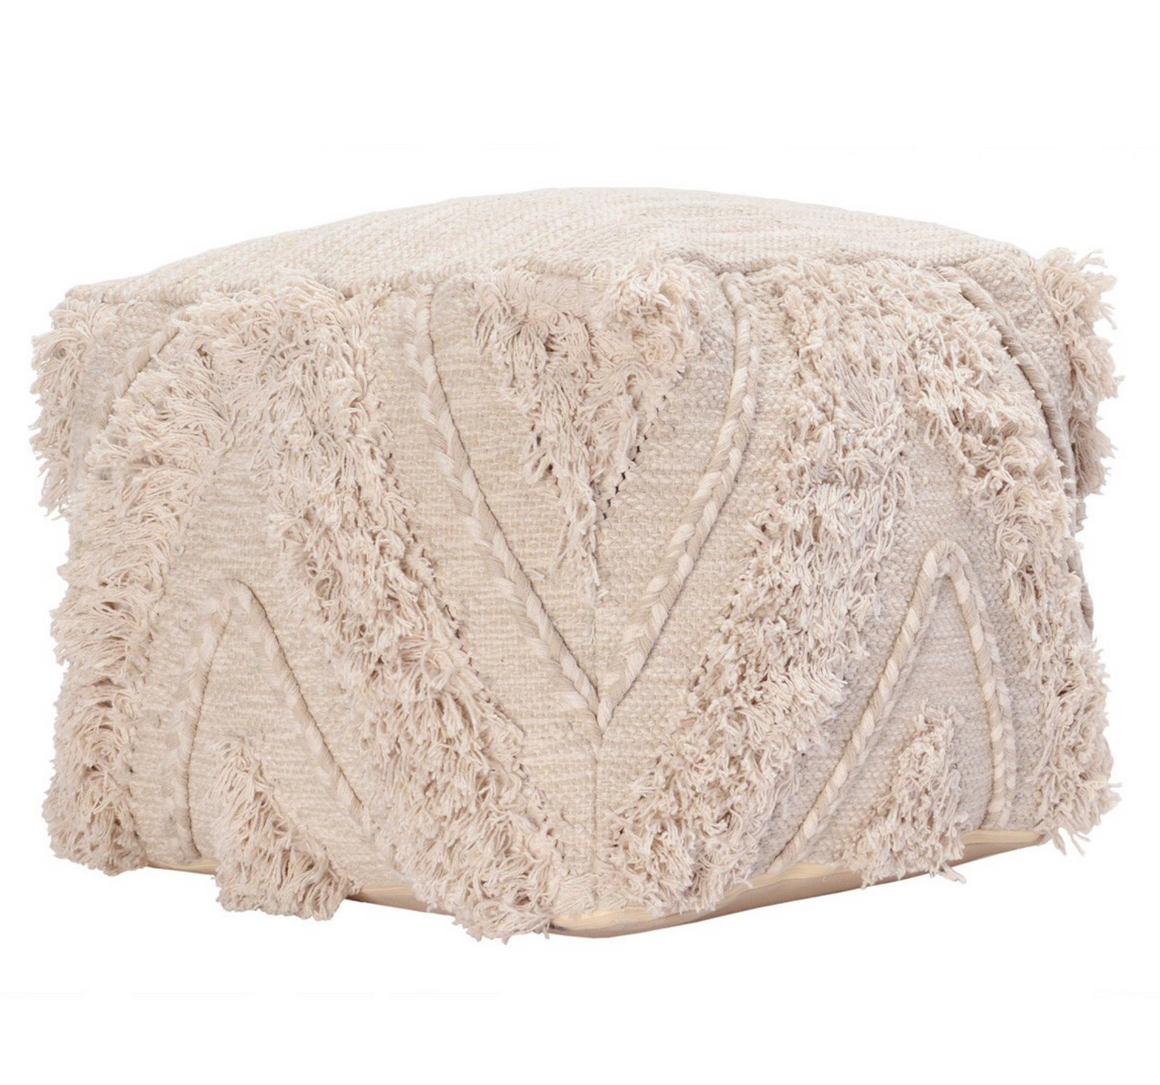 Sahara Natural Pouf/ Ottoman - Revibe Designs